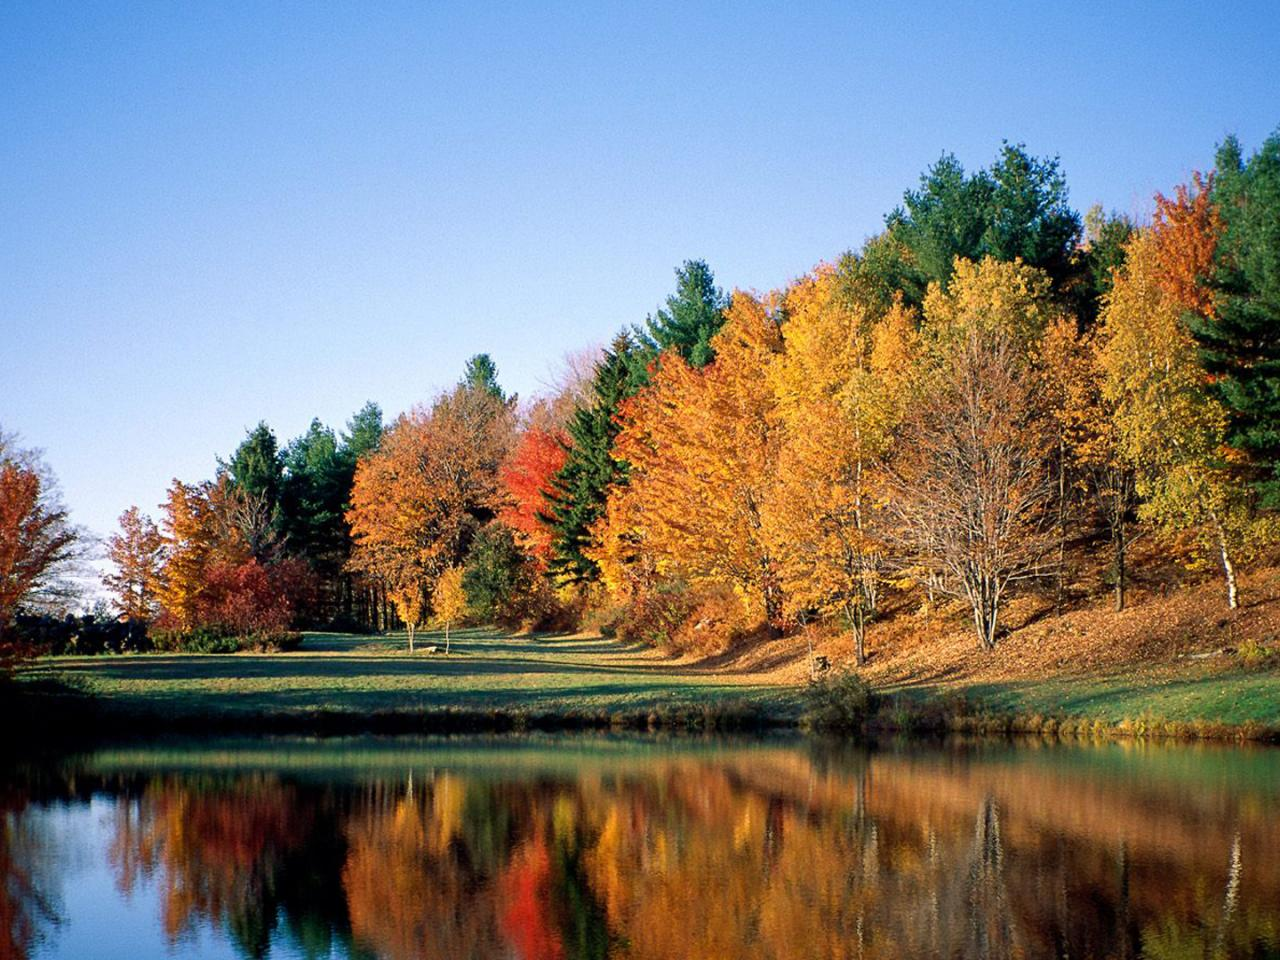 Fall Leaves Hd Wallpapers 1080p Hd Wallpapers 1080p The Most Favorite Wallpaper Hd